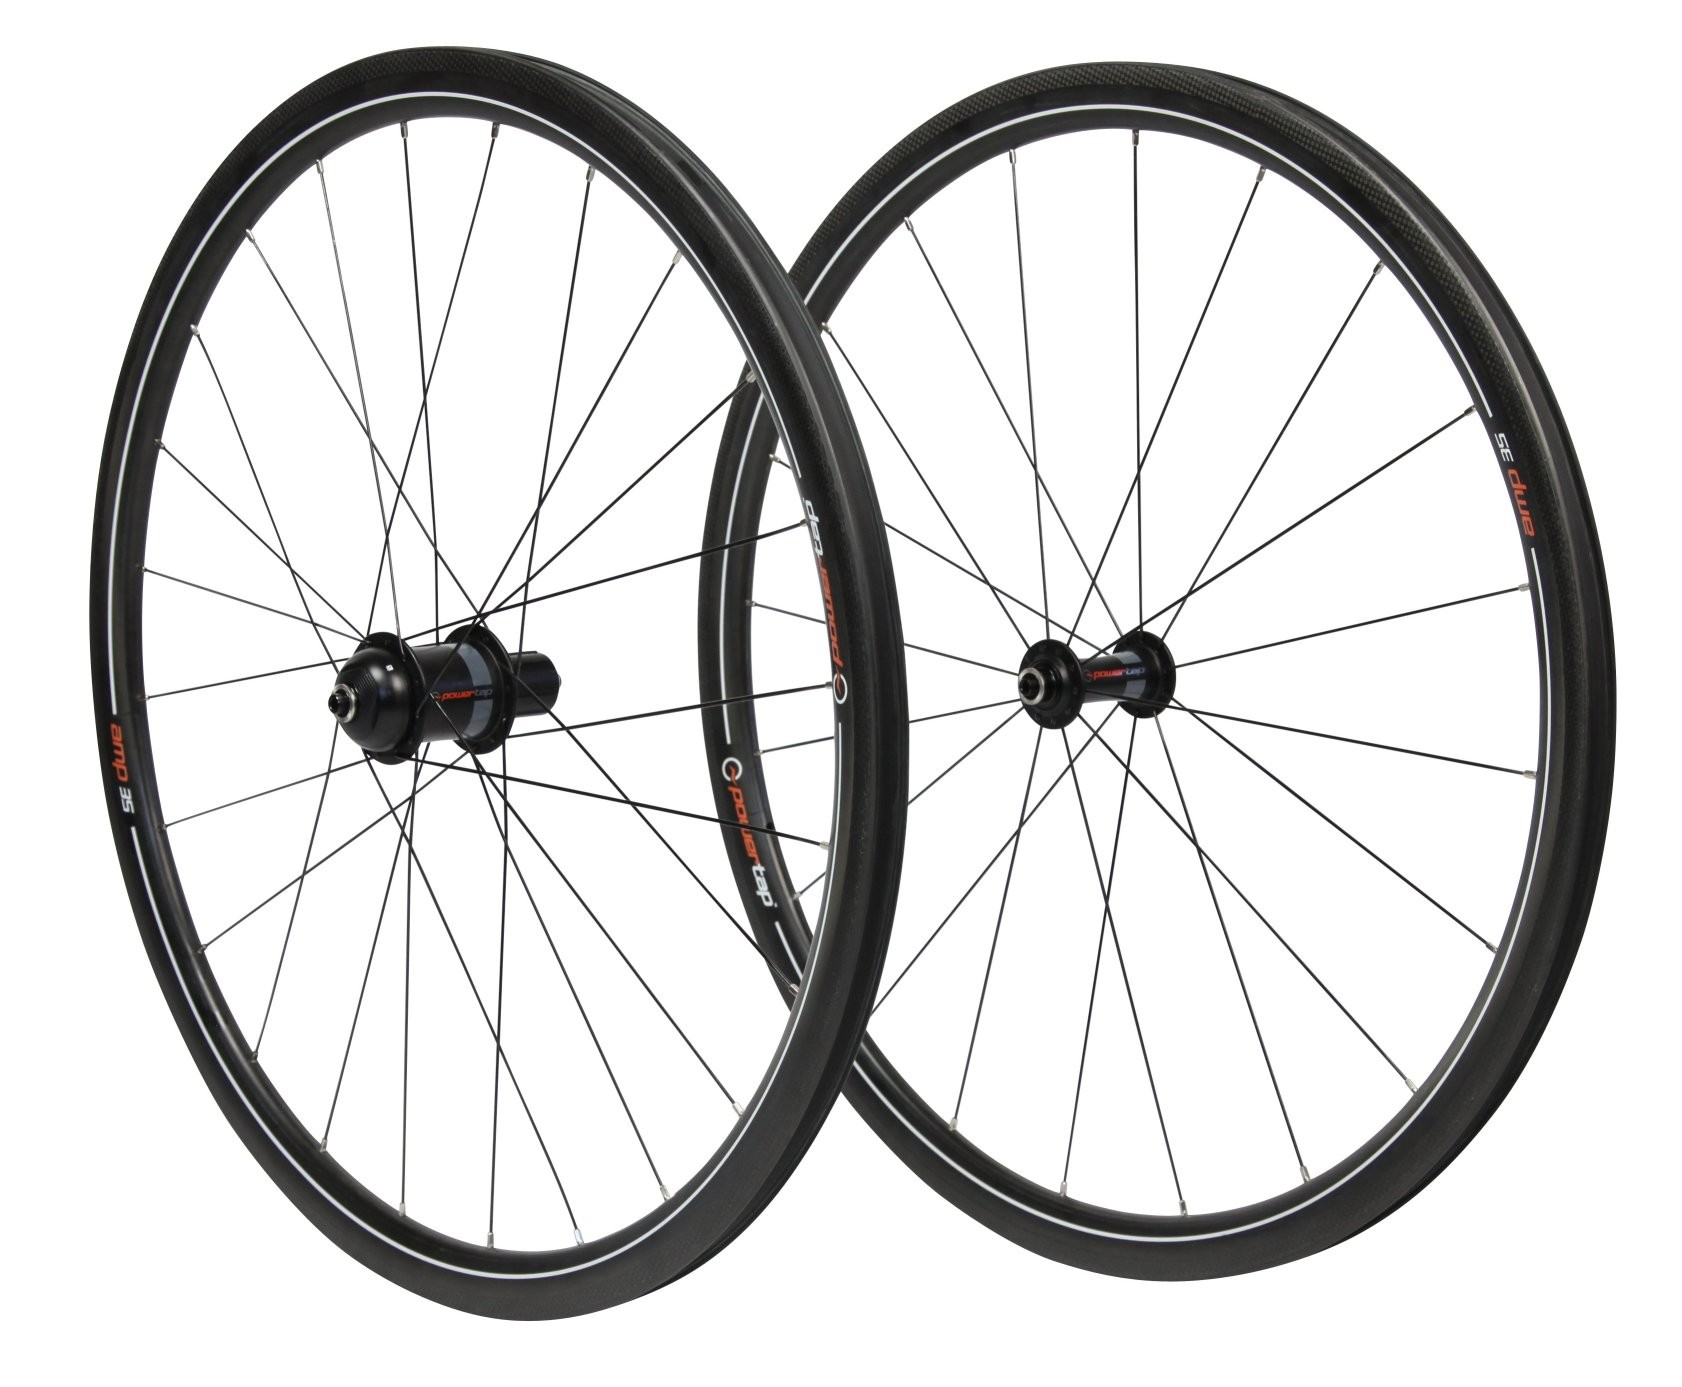 Powertap G3 AMP 35 Wheels